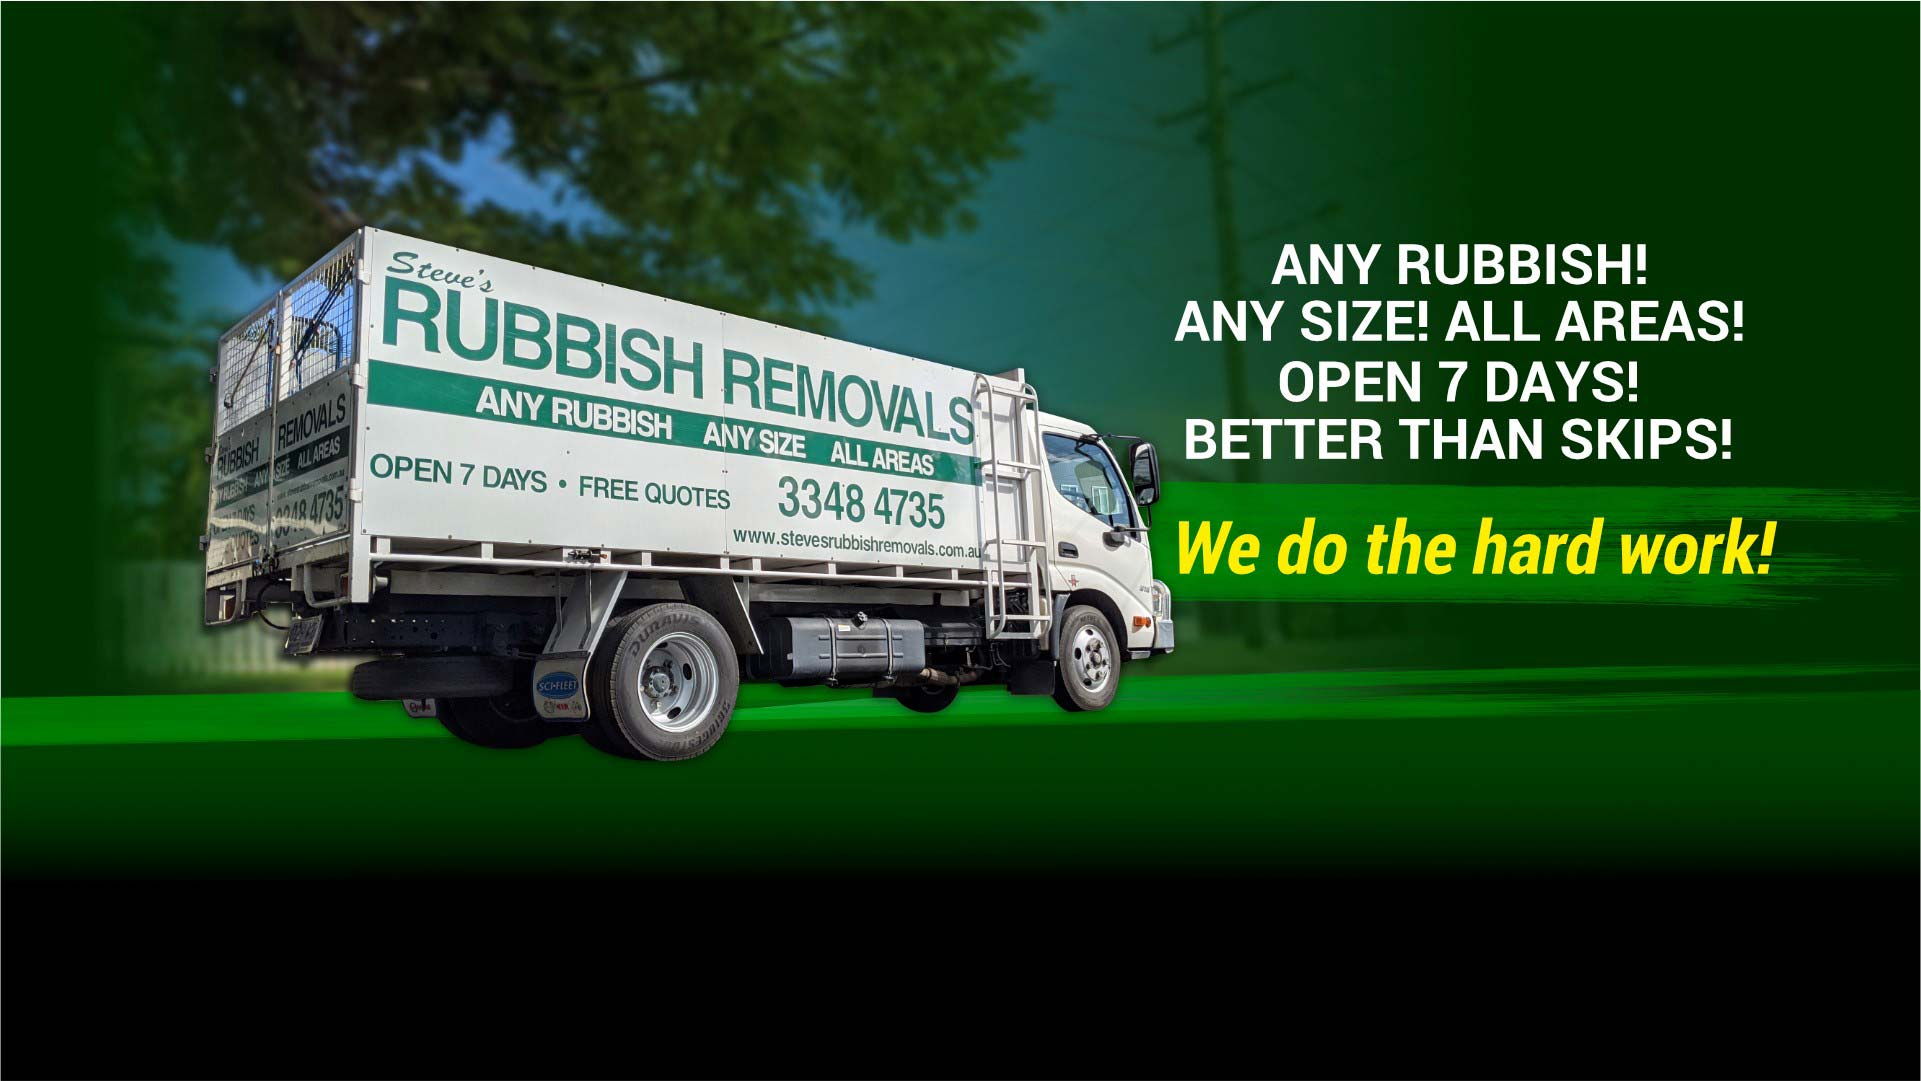 Steve's Rubbish Removals Truck Outside A House Ready To Take Away Unwanted Rubbish